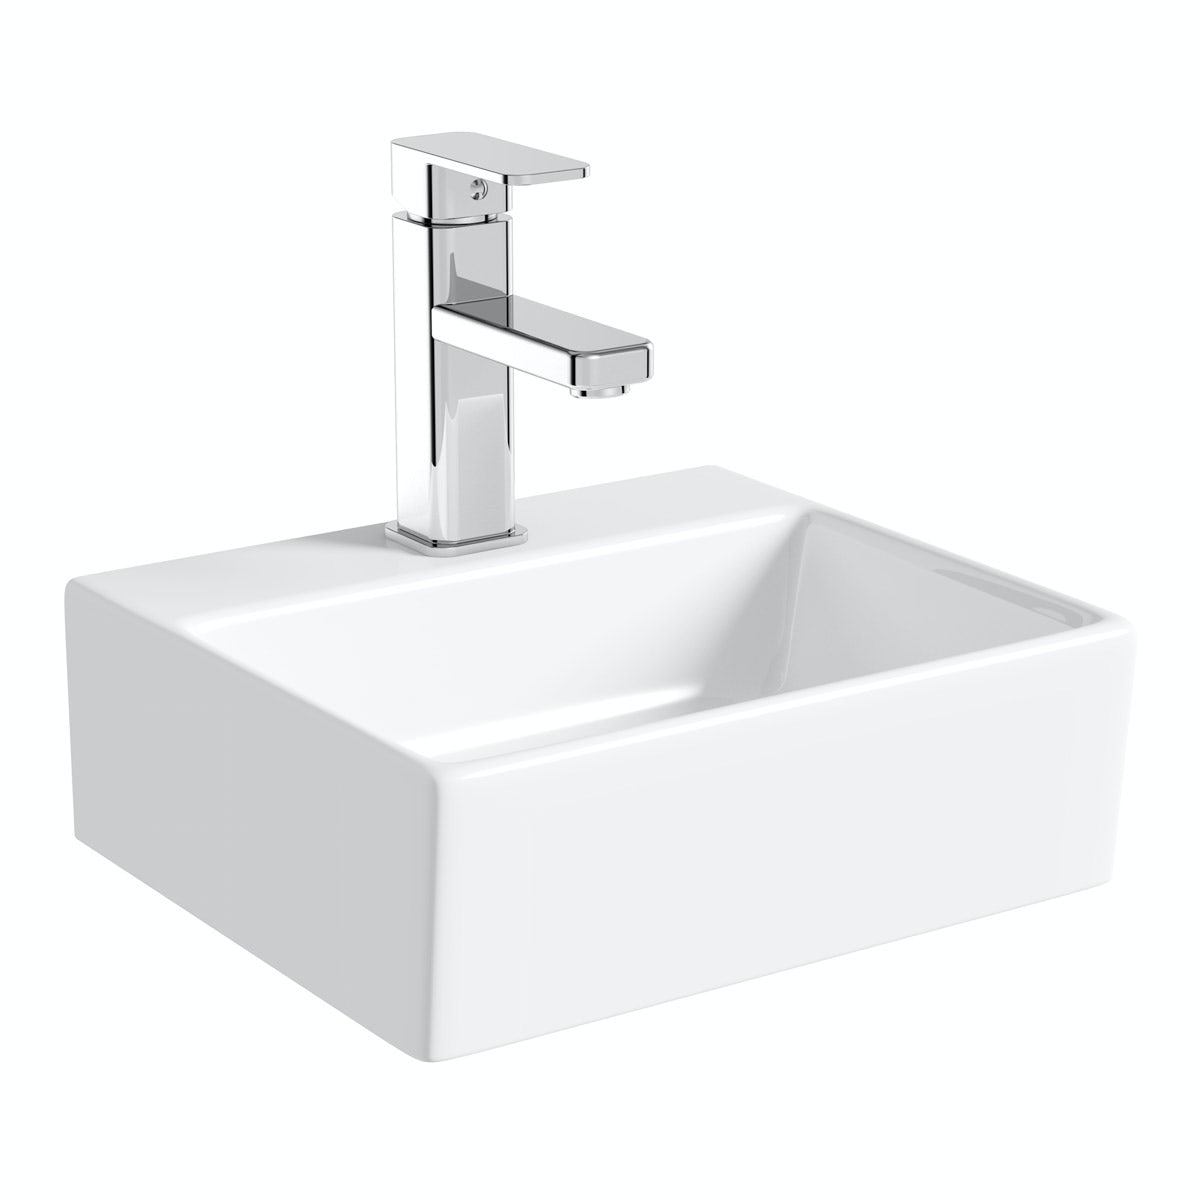 Orchard Derwent square 1 tap hole countertop basin 330mm with waste